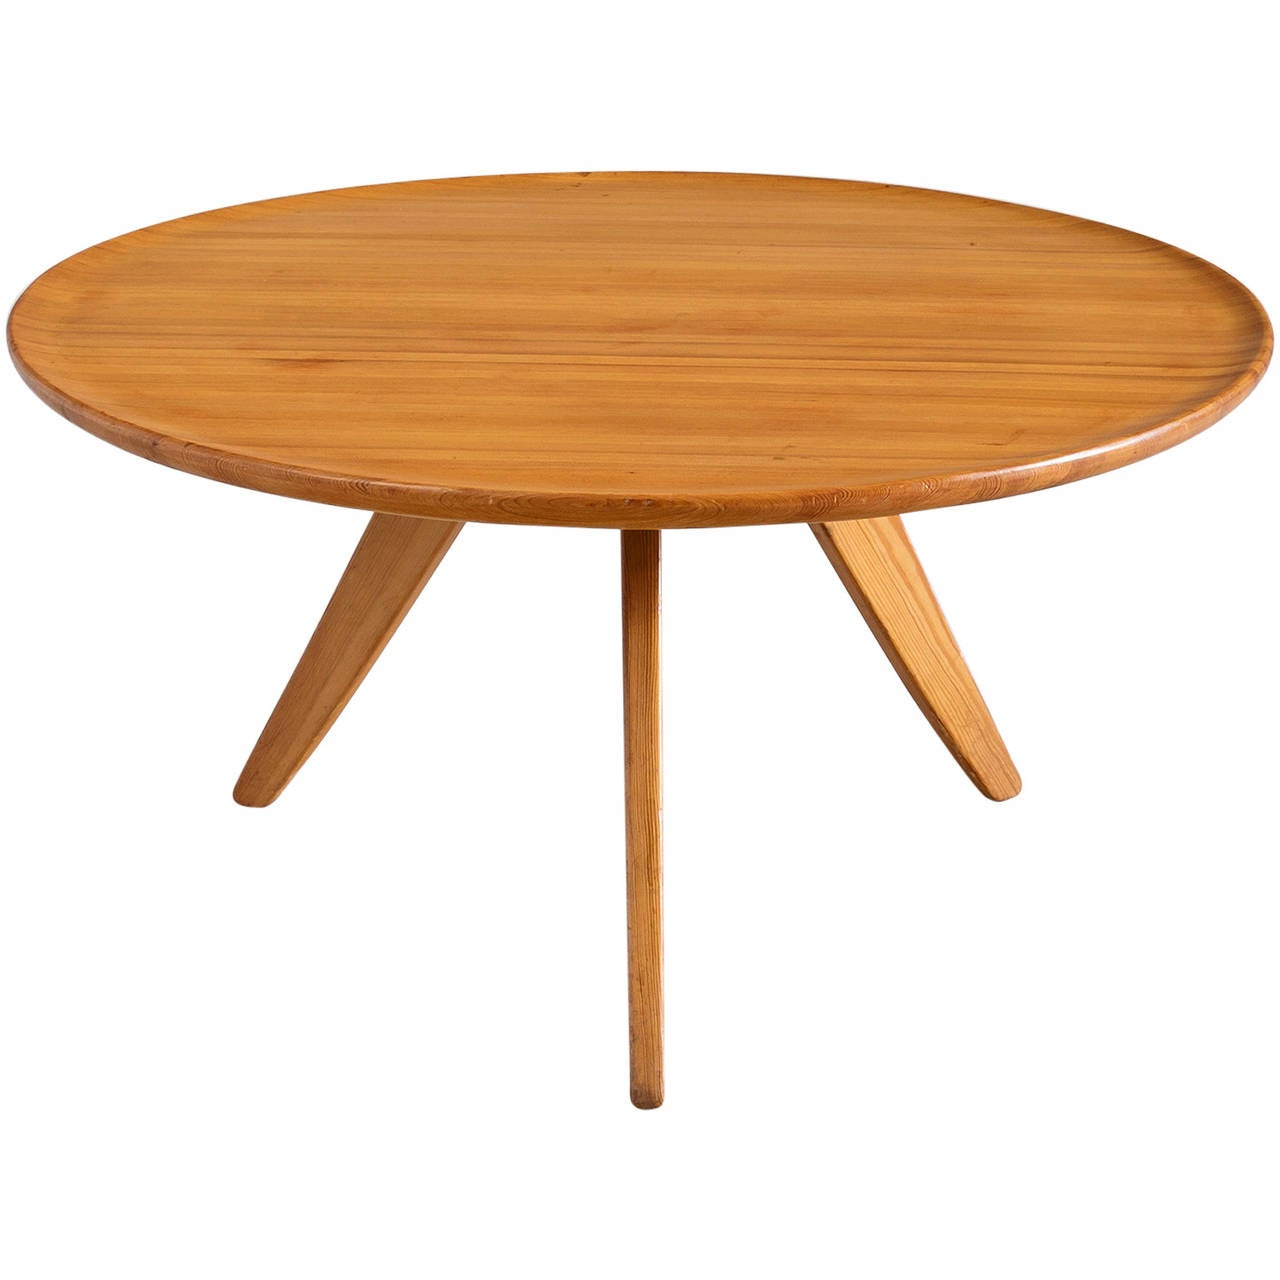 Carl malmsten cocktail table in solid pine wood for sale for Solid coffee table